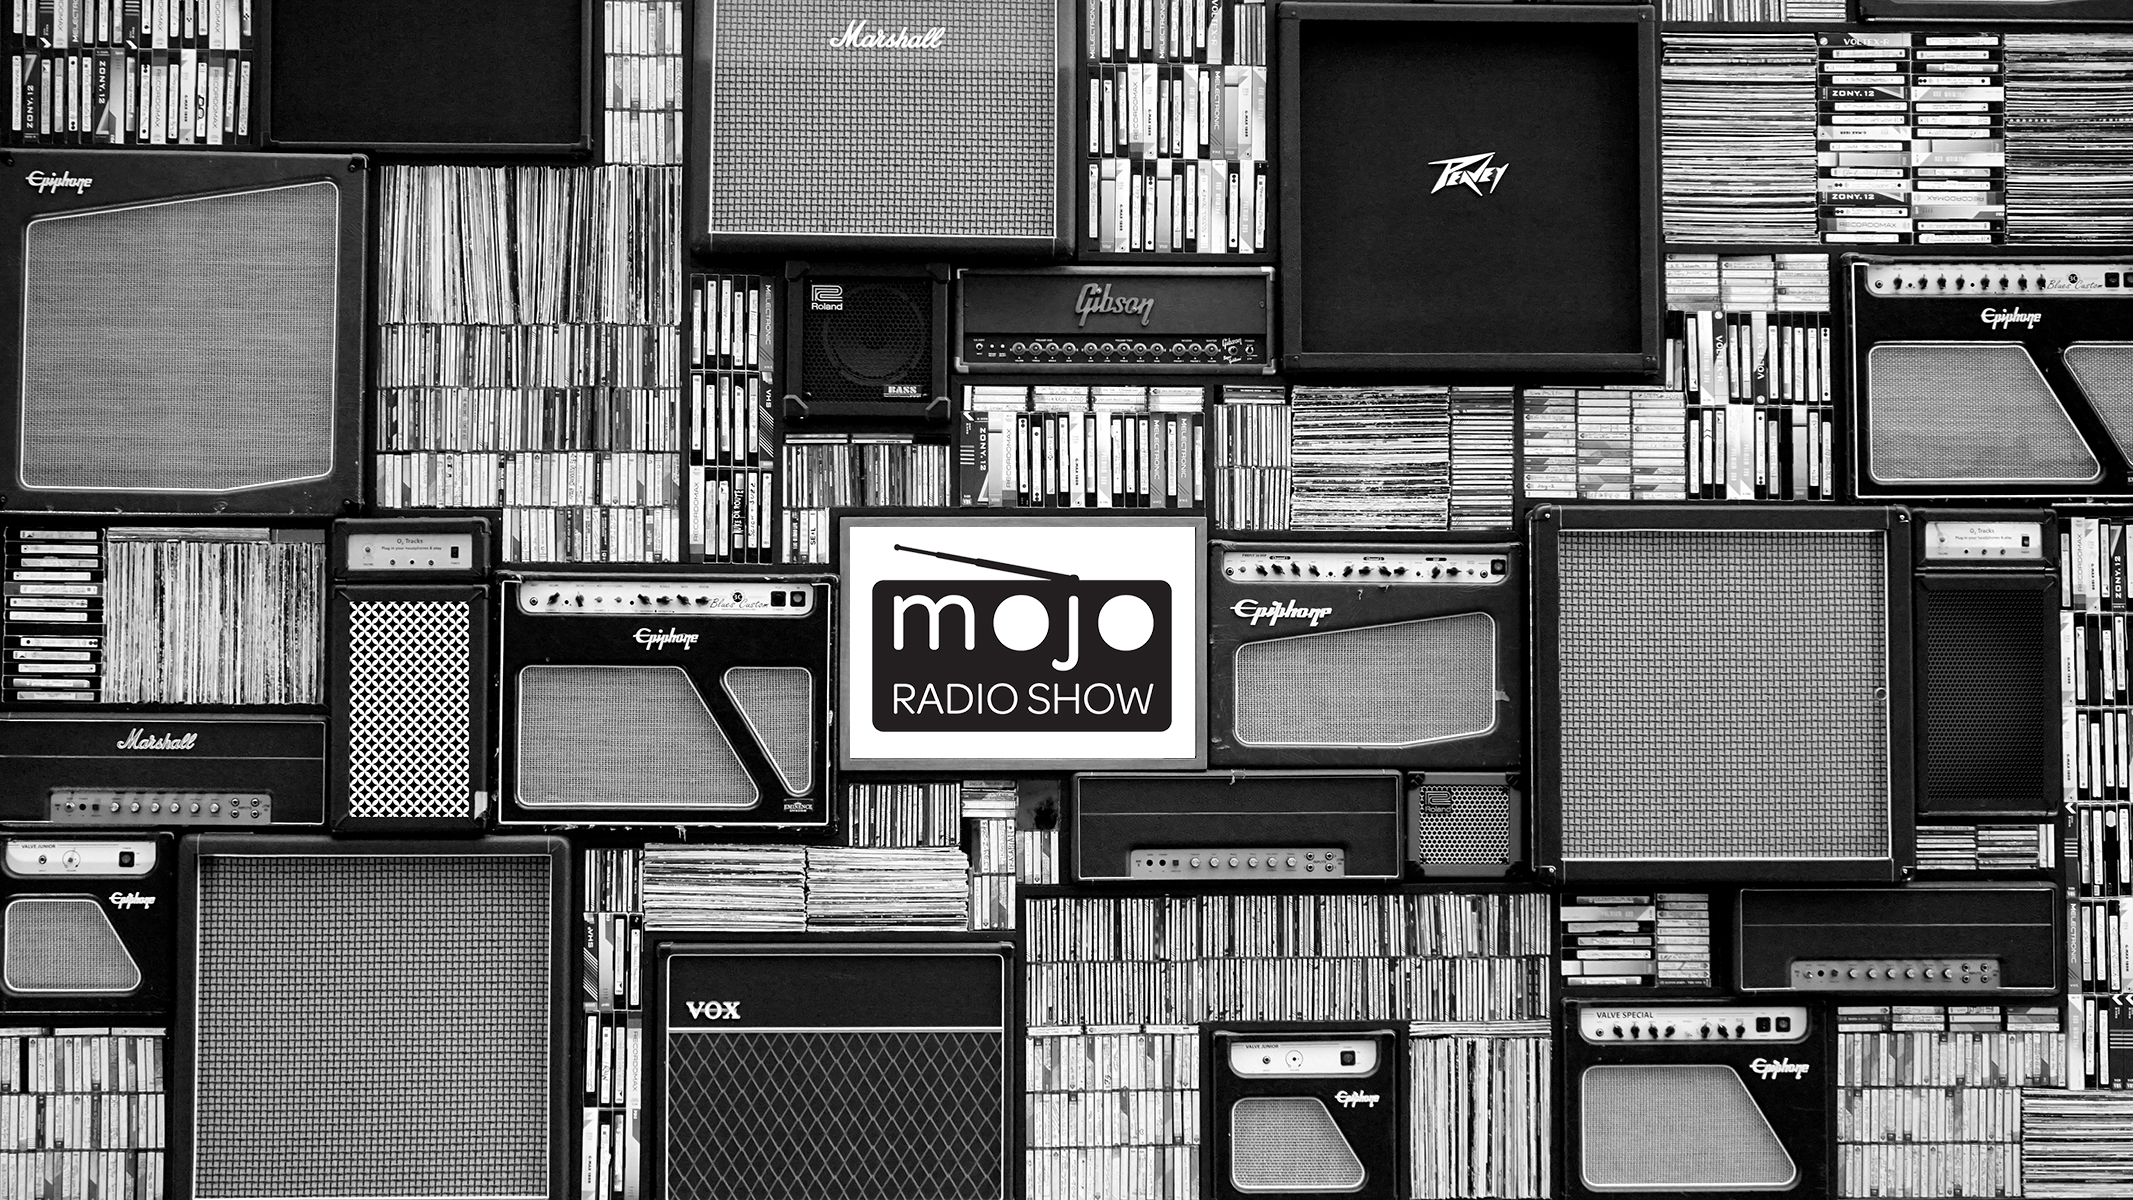 Stacked amps, records, CDs and Mojo Radio Show logo